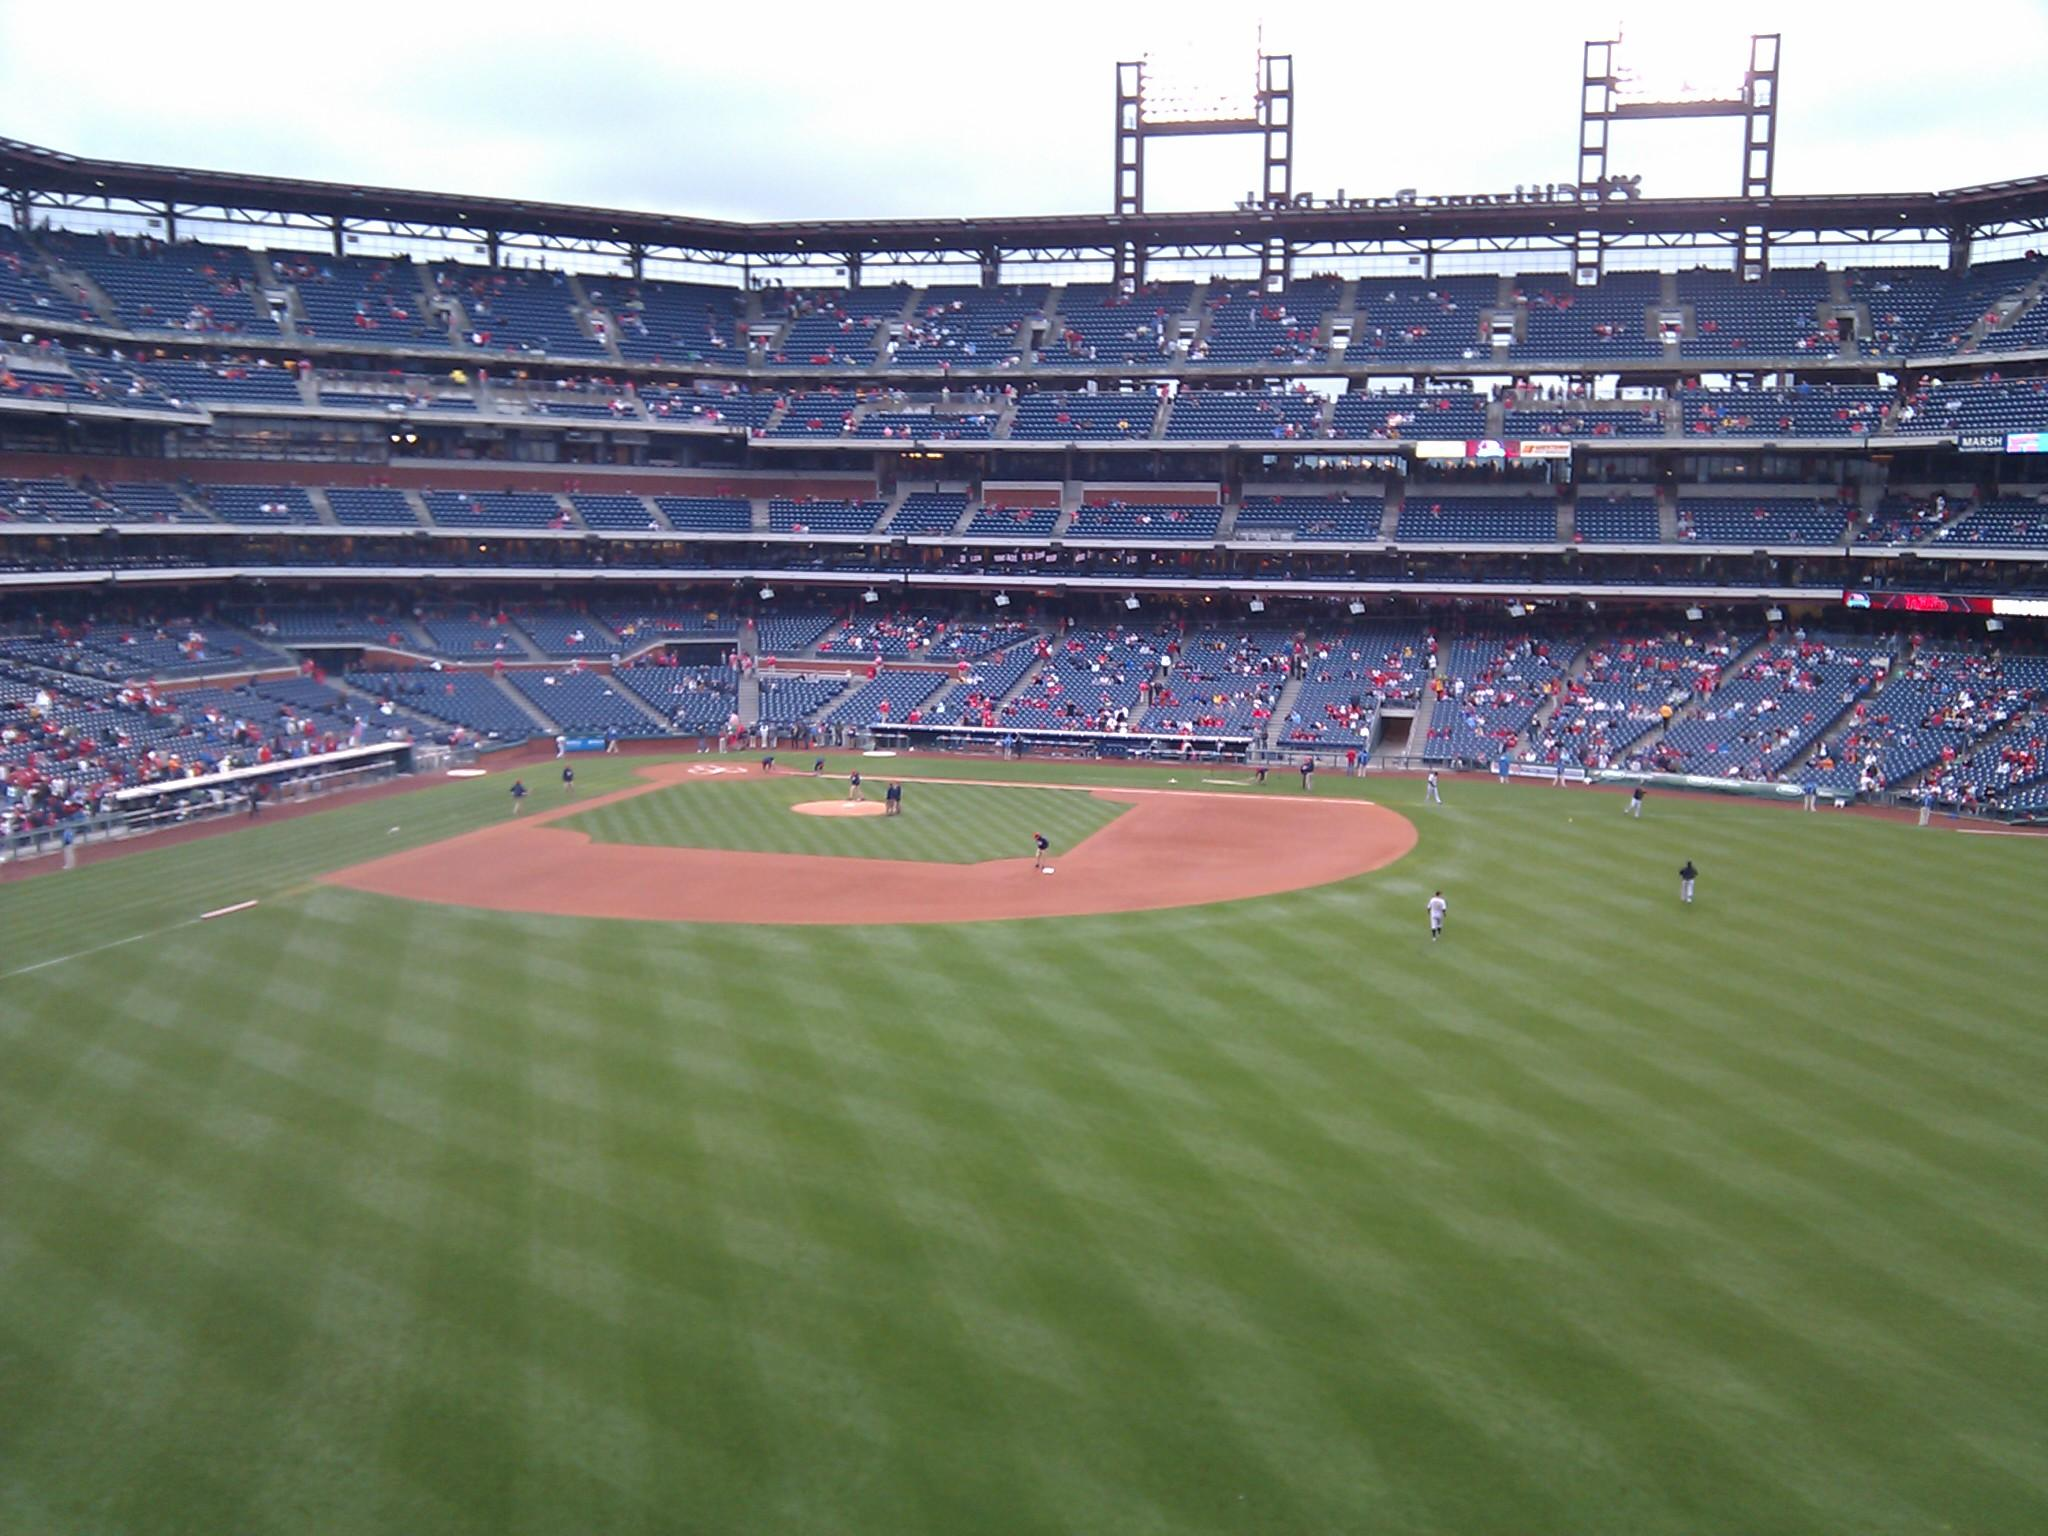 Citizens Bank Park Section 201 Row 1 Seat 1